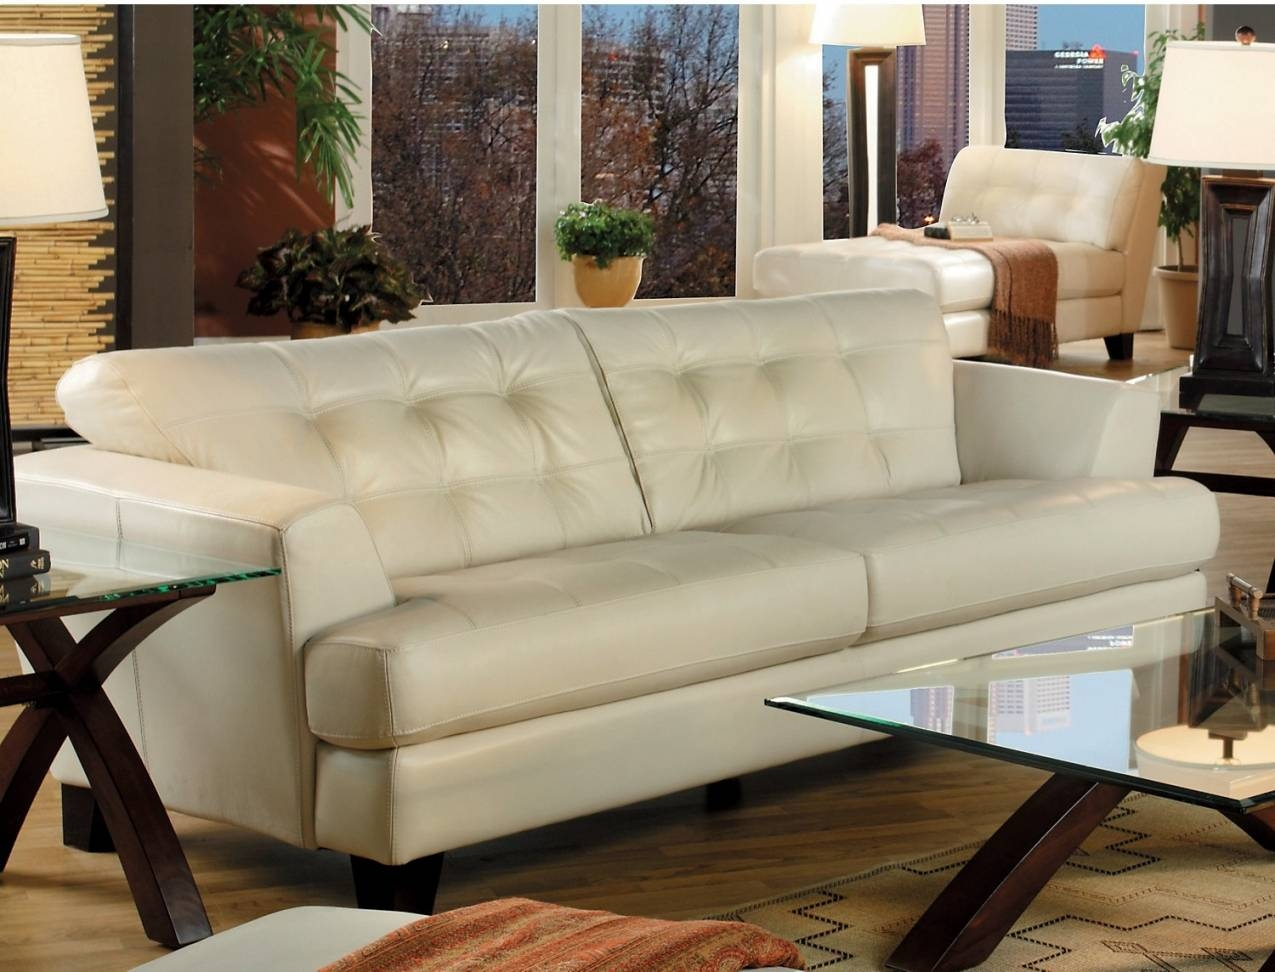 Cindy Crawford Sectional Sofa Cindy Crawford Home State Street with regard to Cindy Crawford Home Sectional Sofa (Image 12 of 30)